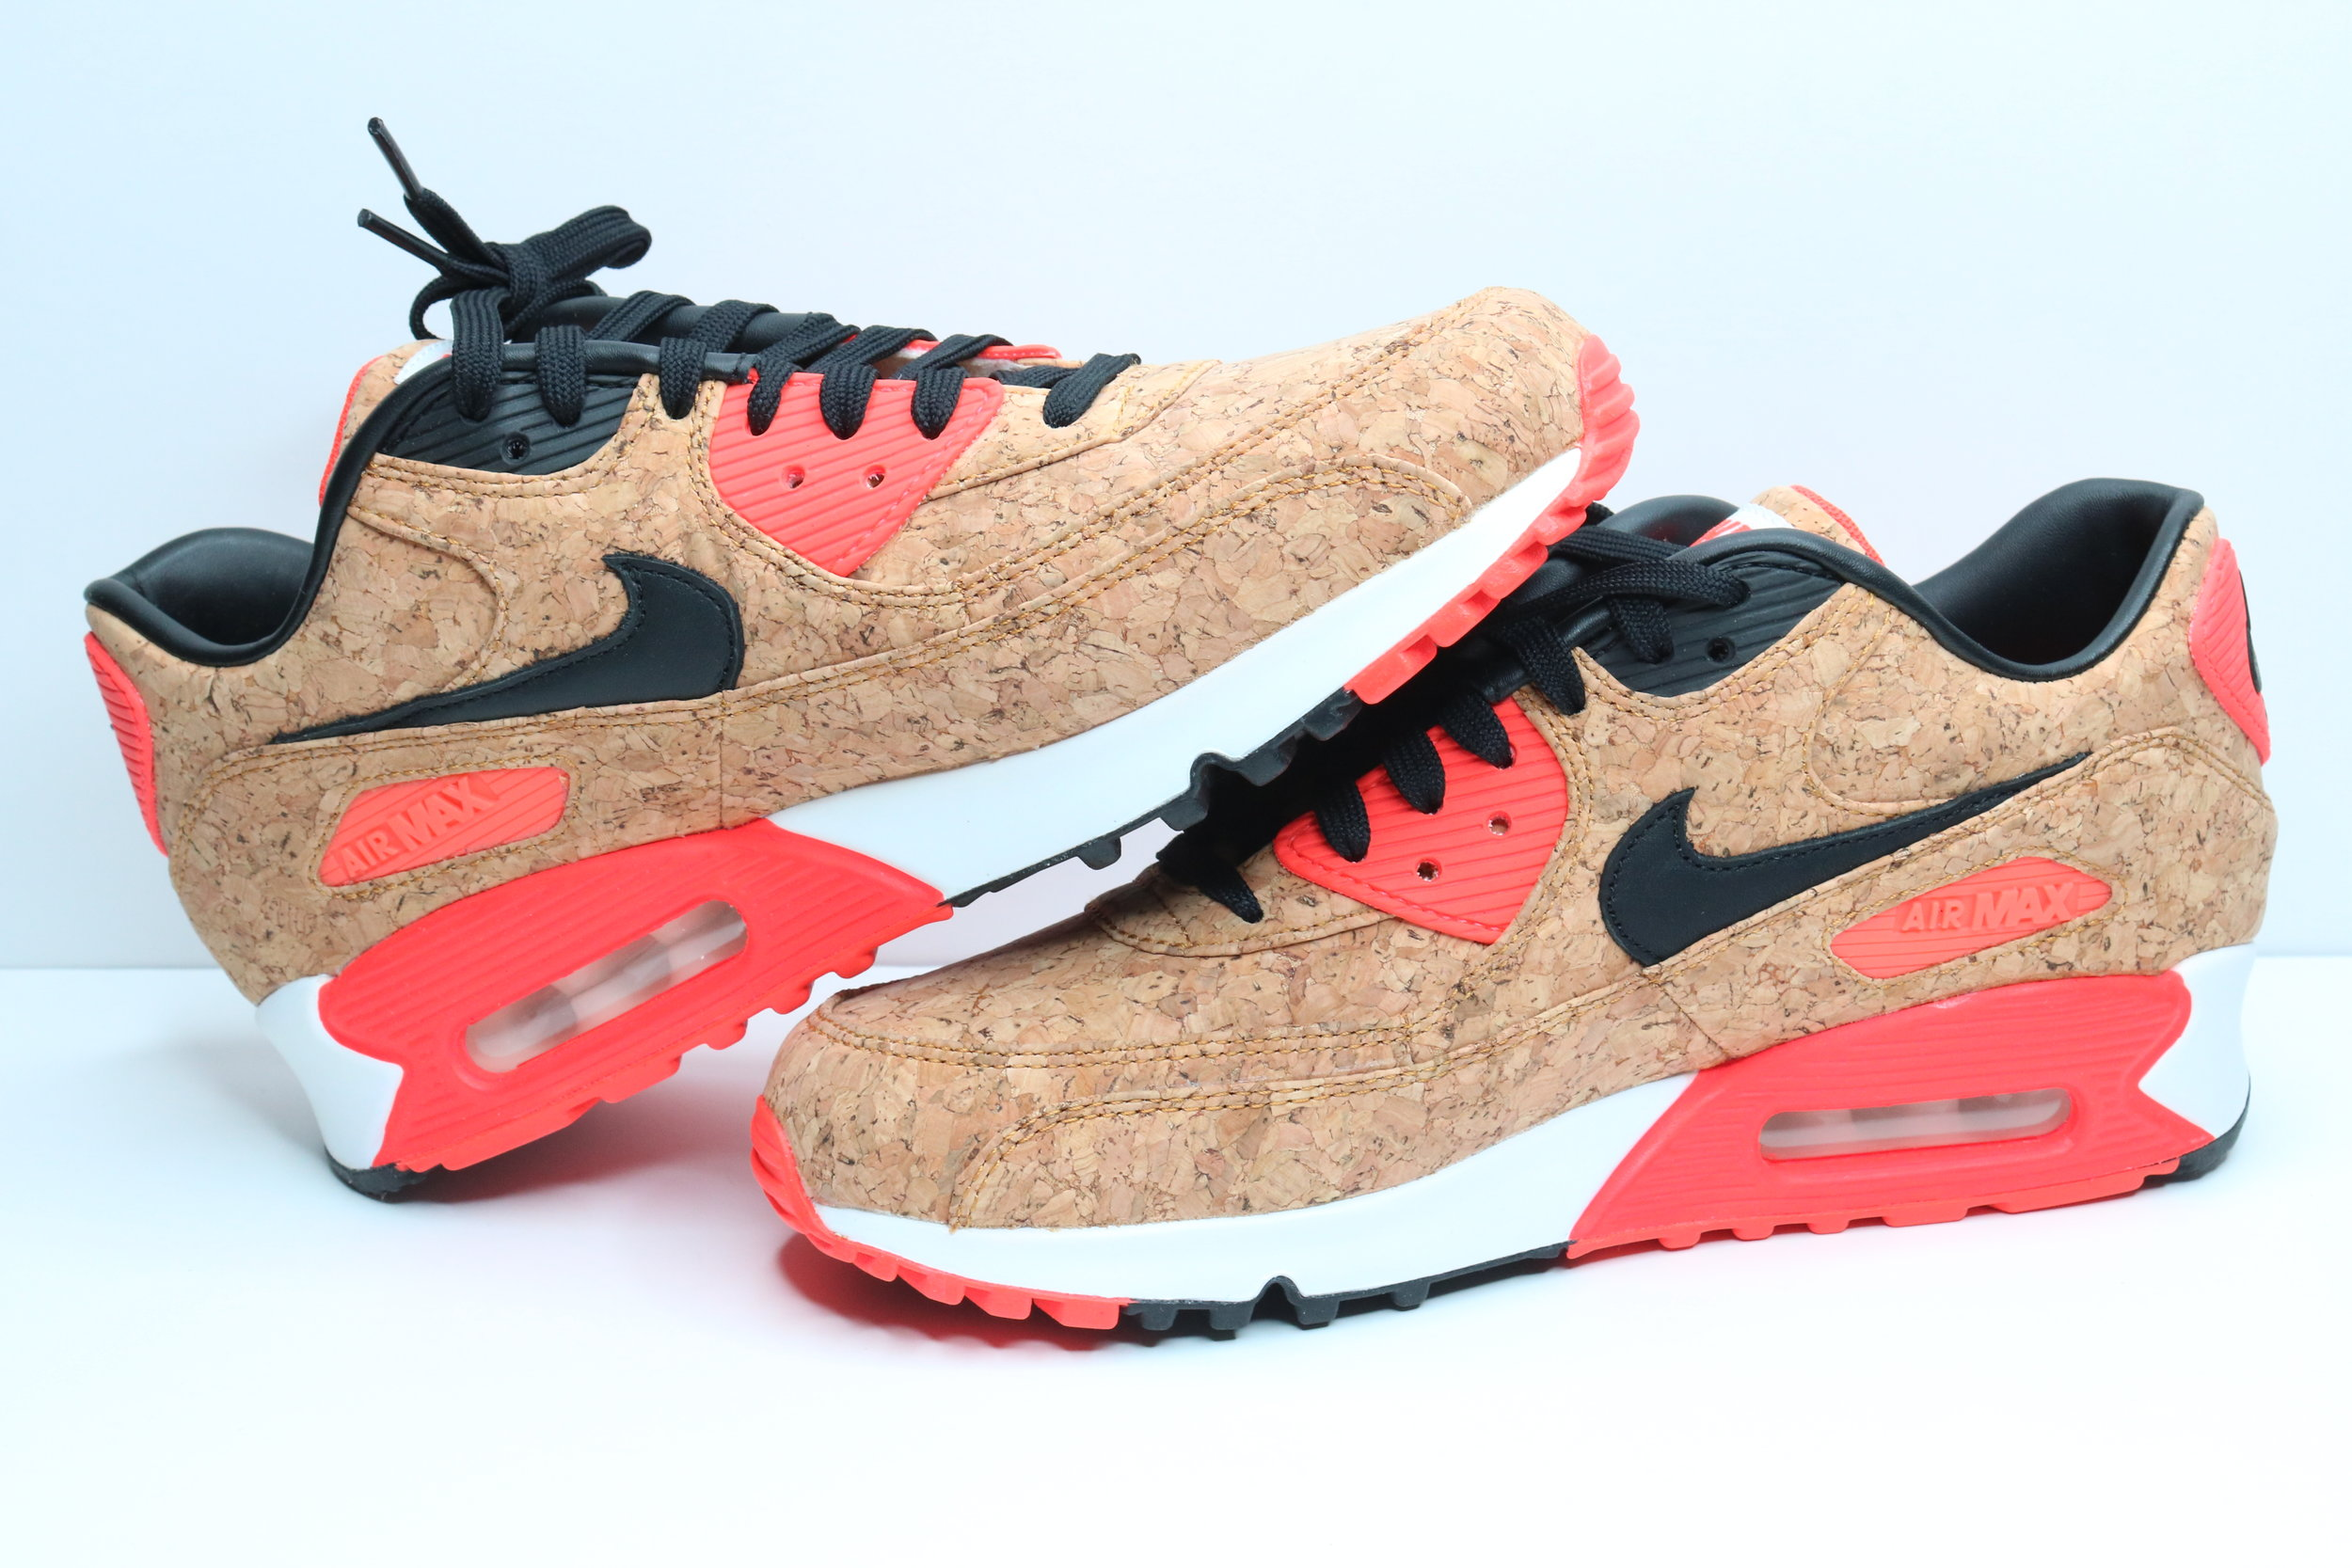 wholesale dealer 2482b 1a026 US 9.0W (7.5M) - NIKE AIR MAX 90 ANNIVERSARY